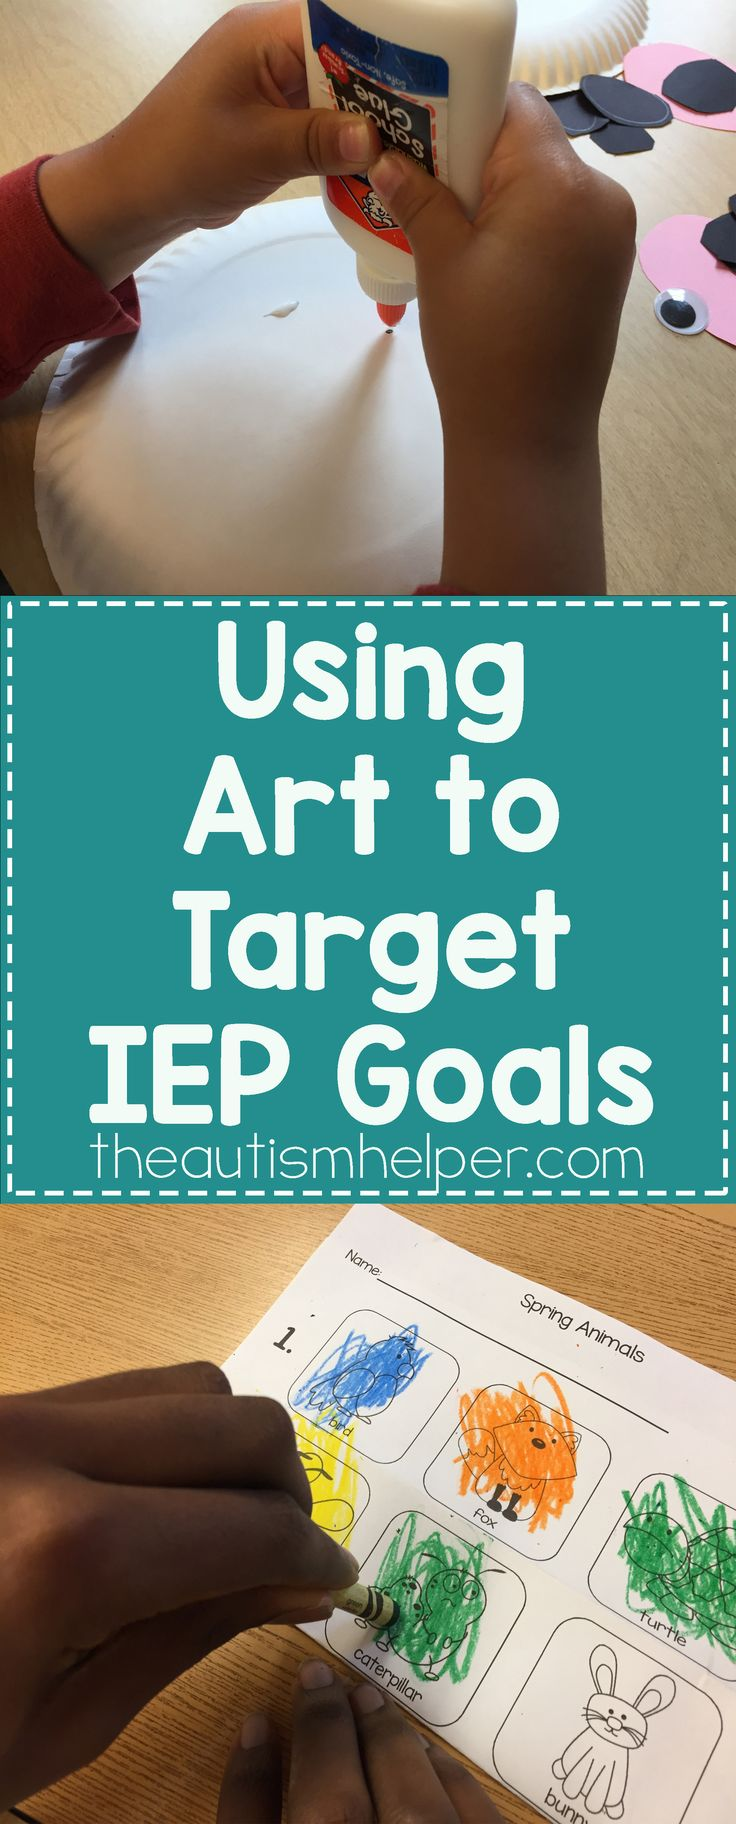 Let's continue generalizing those skills your students have worked so hard on all year with another creative outlet - ART! Join in our discussion of the MANY ways art helps target IEP goals & more on the blog!! From theautismhelper.com #theautismhelper